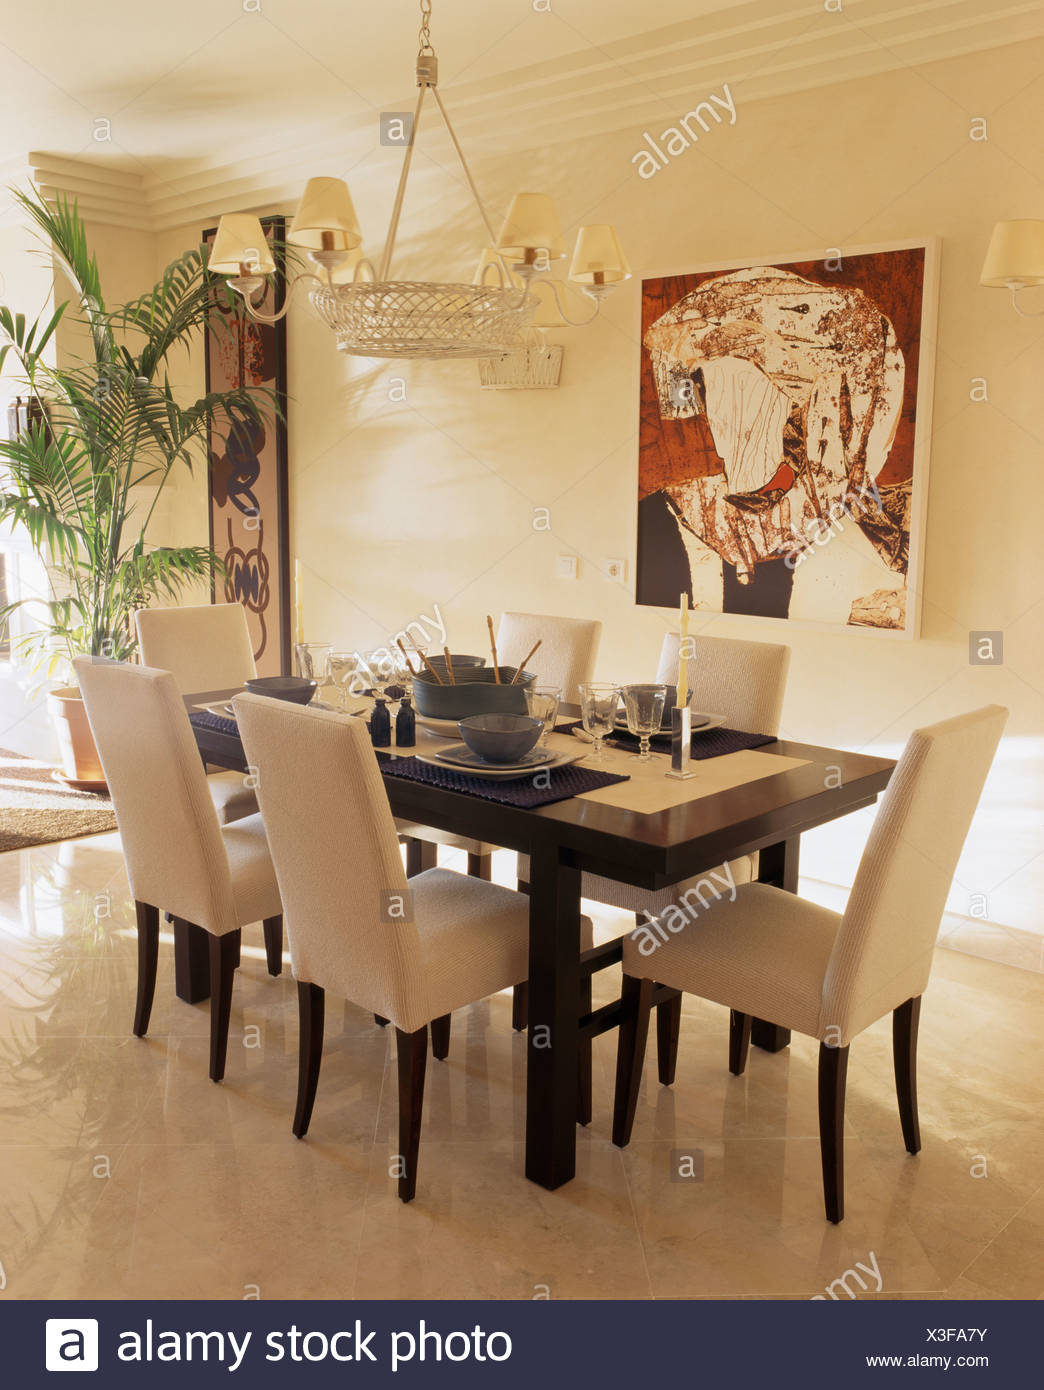 Tall Back Cream Upholstered Chairs And Black Table In Modern White Dining  Room With Abstract Picture On The Wall